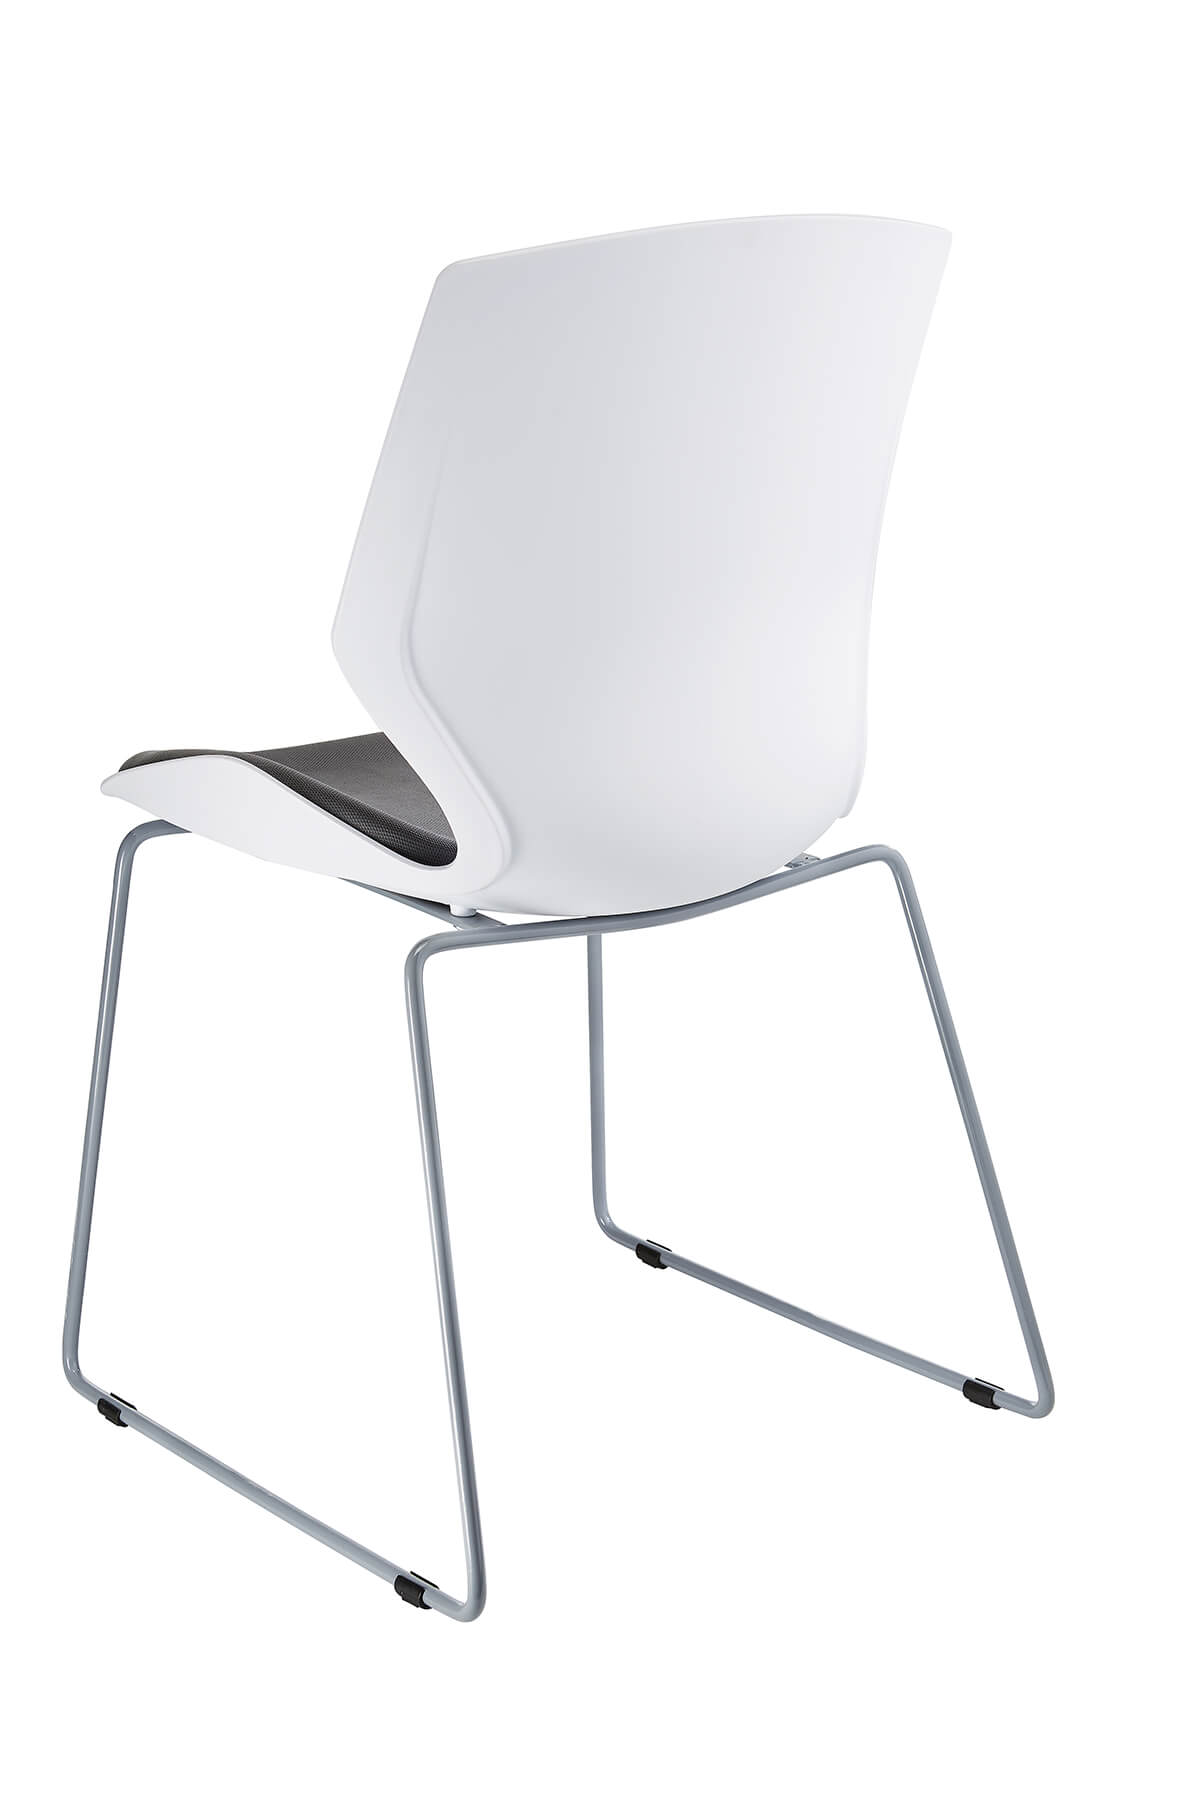 Lounge Chair Vesuri - arctic white / stone grey